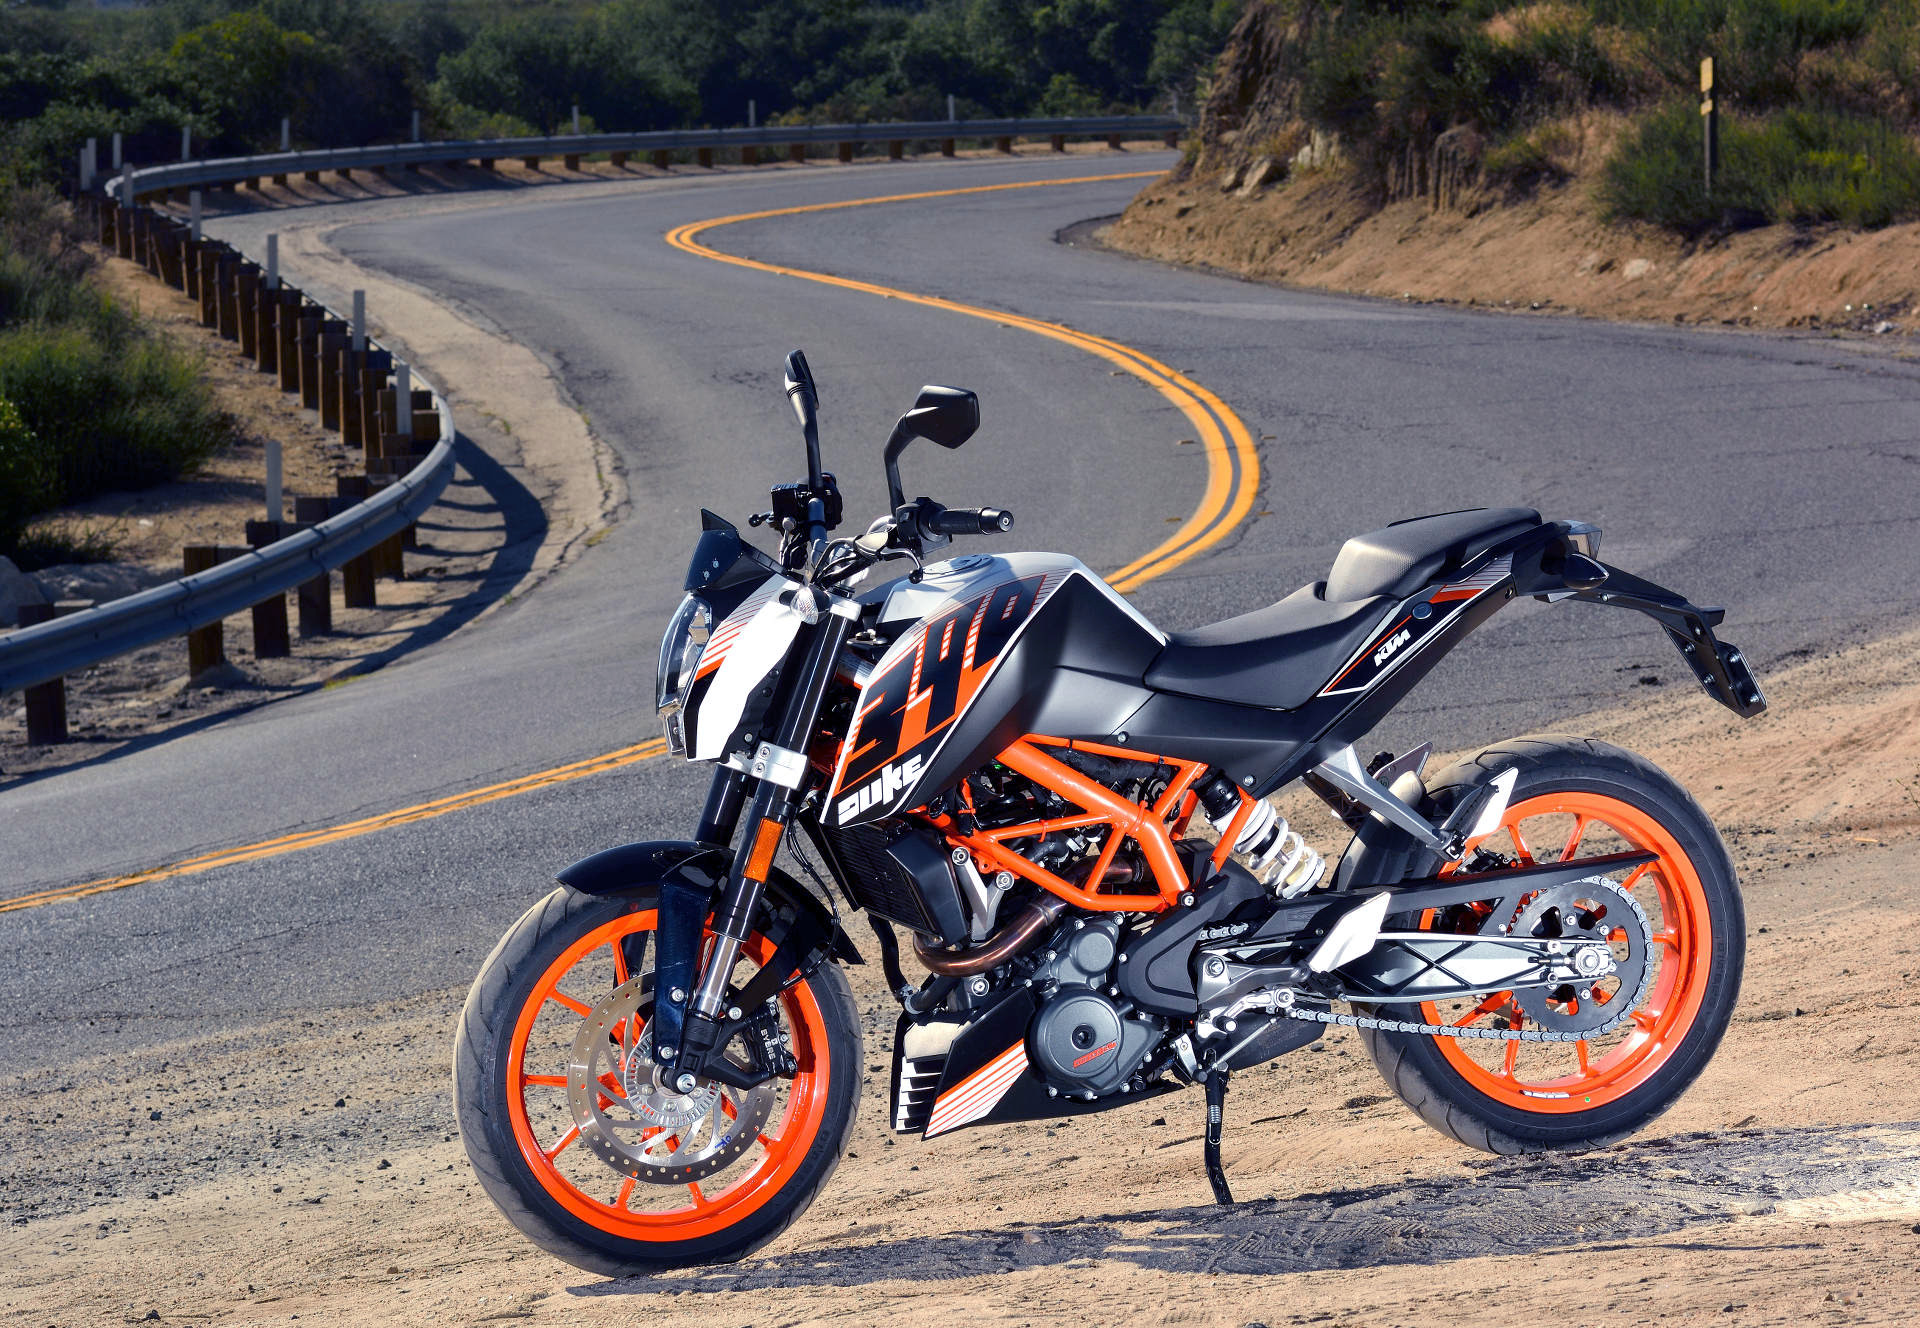 md tests crazy light street legal singles, part 2: ktm 390 duke